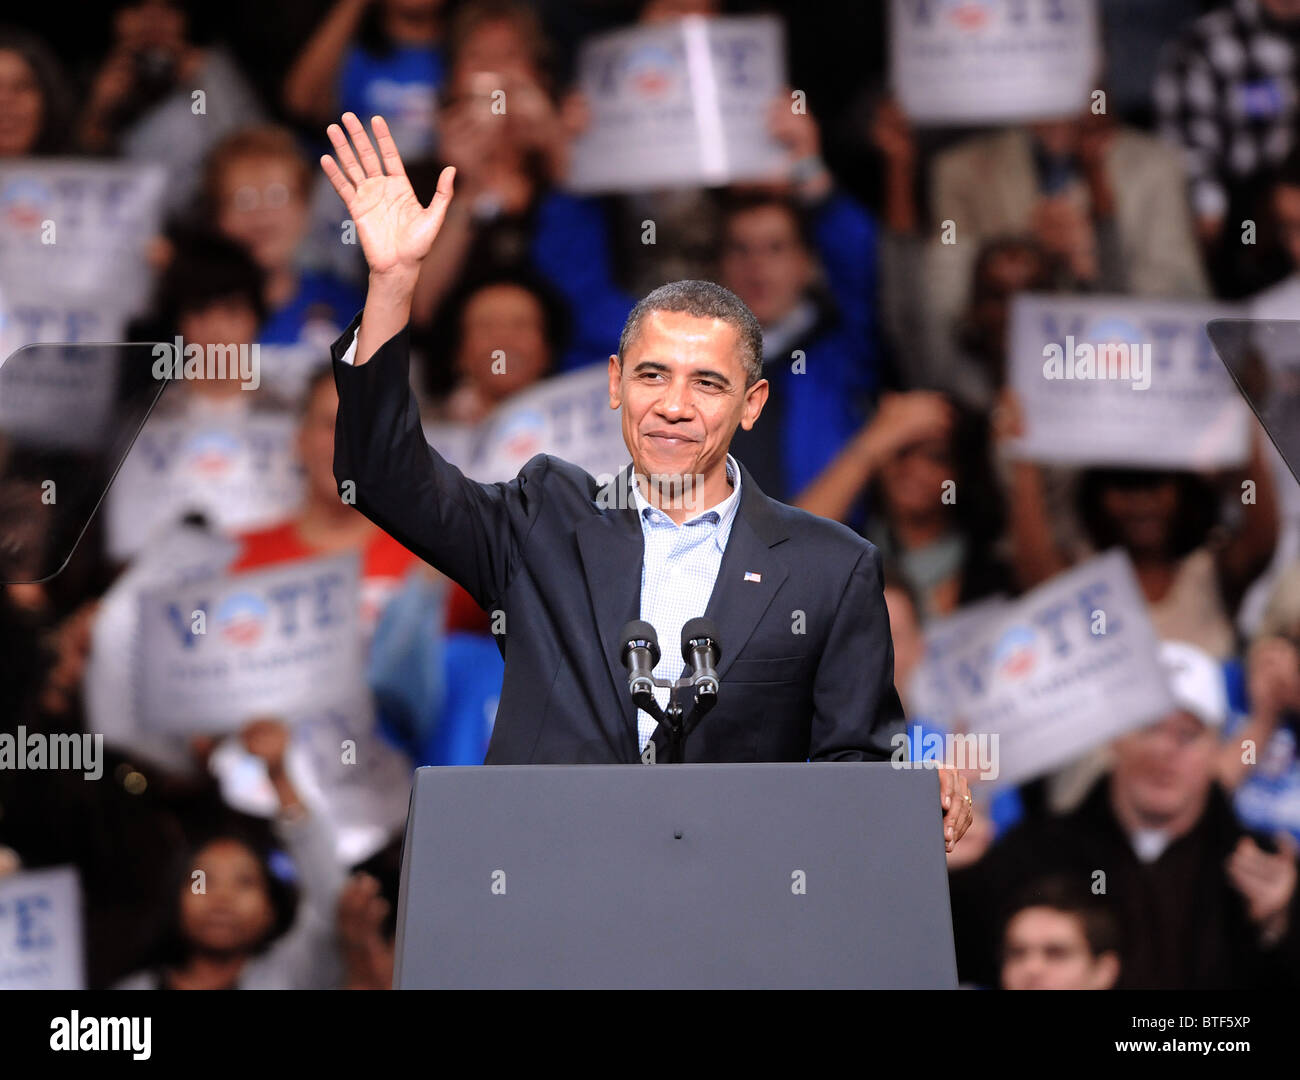 President Barack Obama greets the crowd before speaking at a rally supporting Connecticut Democratic Candidates - Stock Image